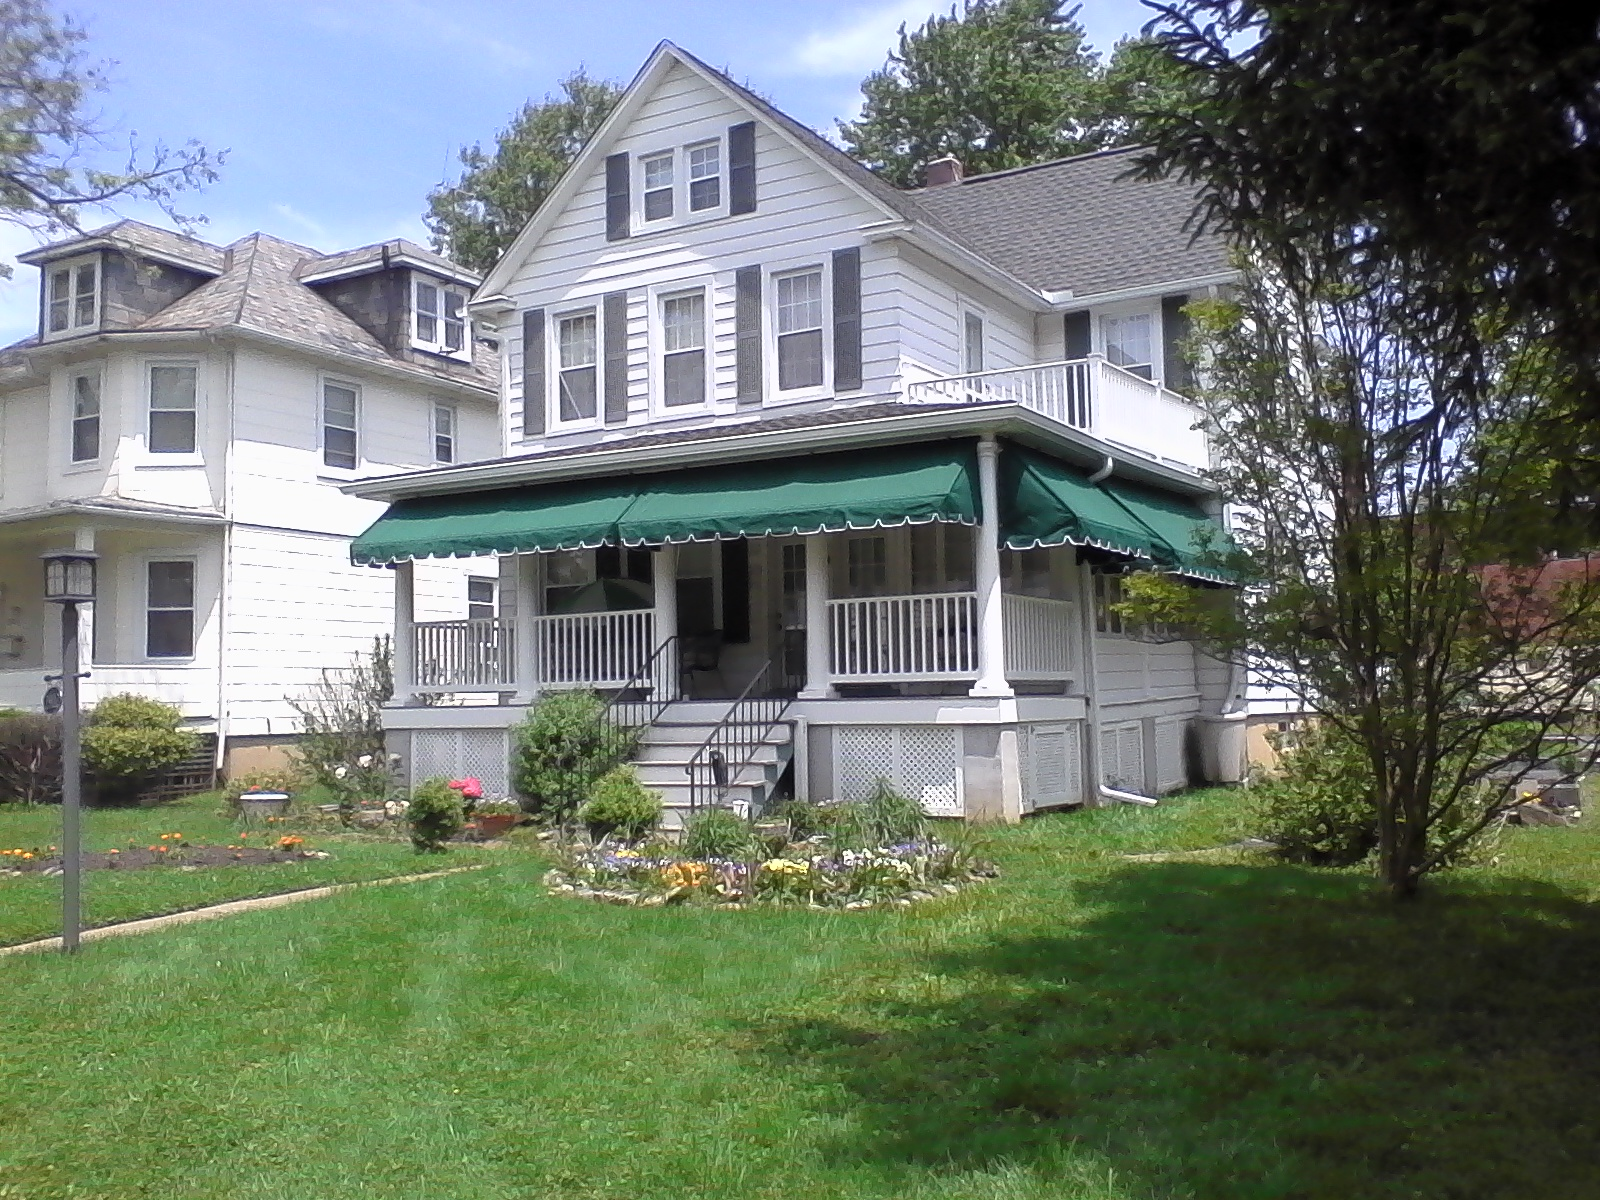 green-front-porch-awnings_27852188436_o